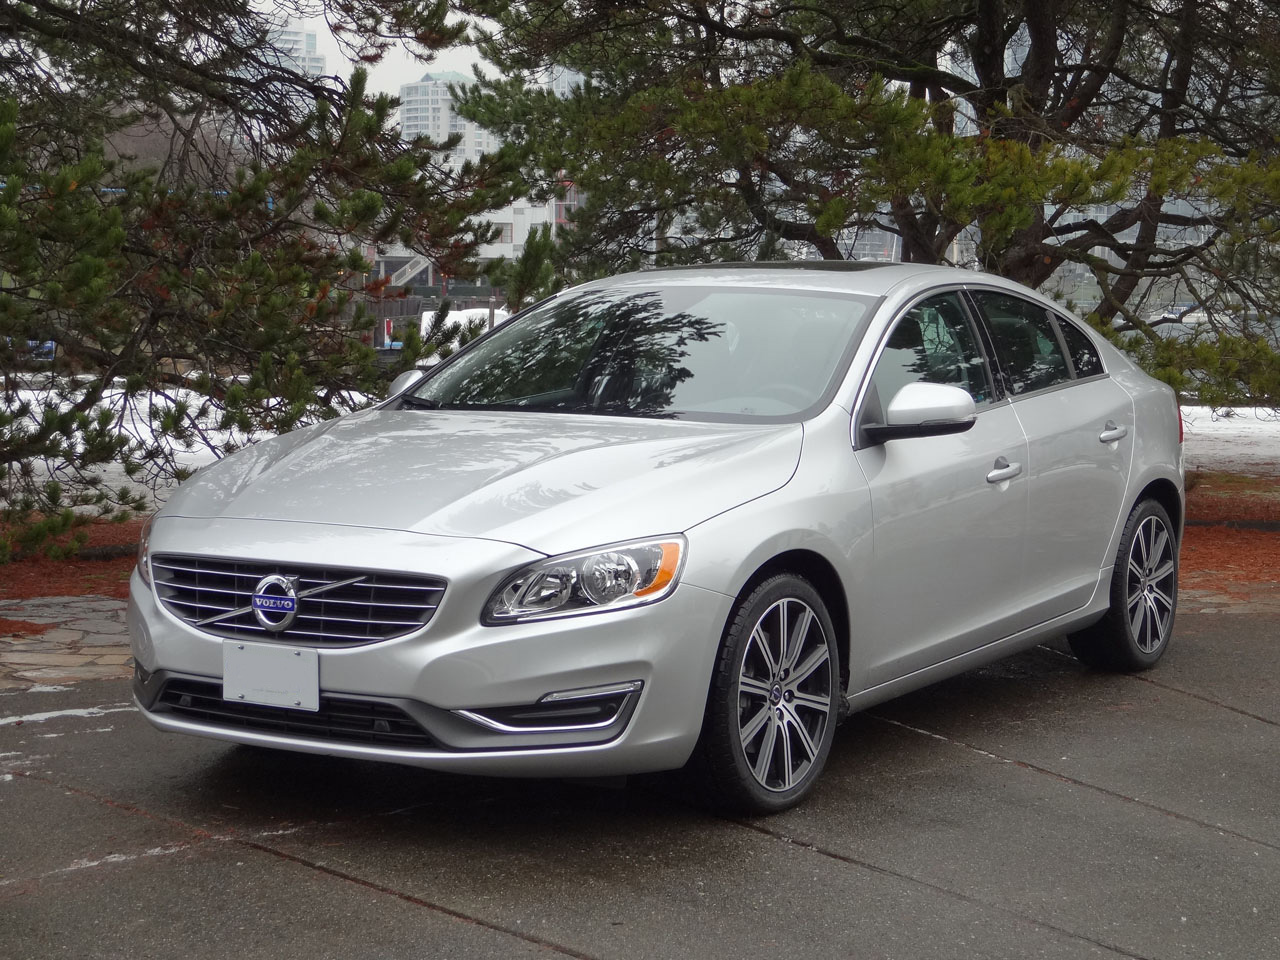 pa price volvo offers and finance cross image new country interior deals crosscountry lease htm doylestown